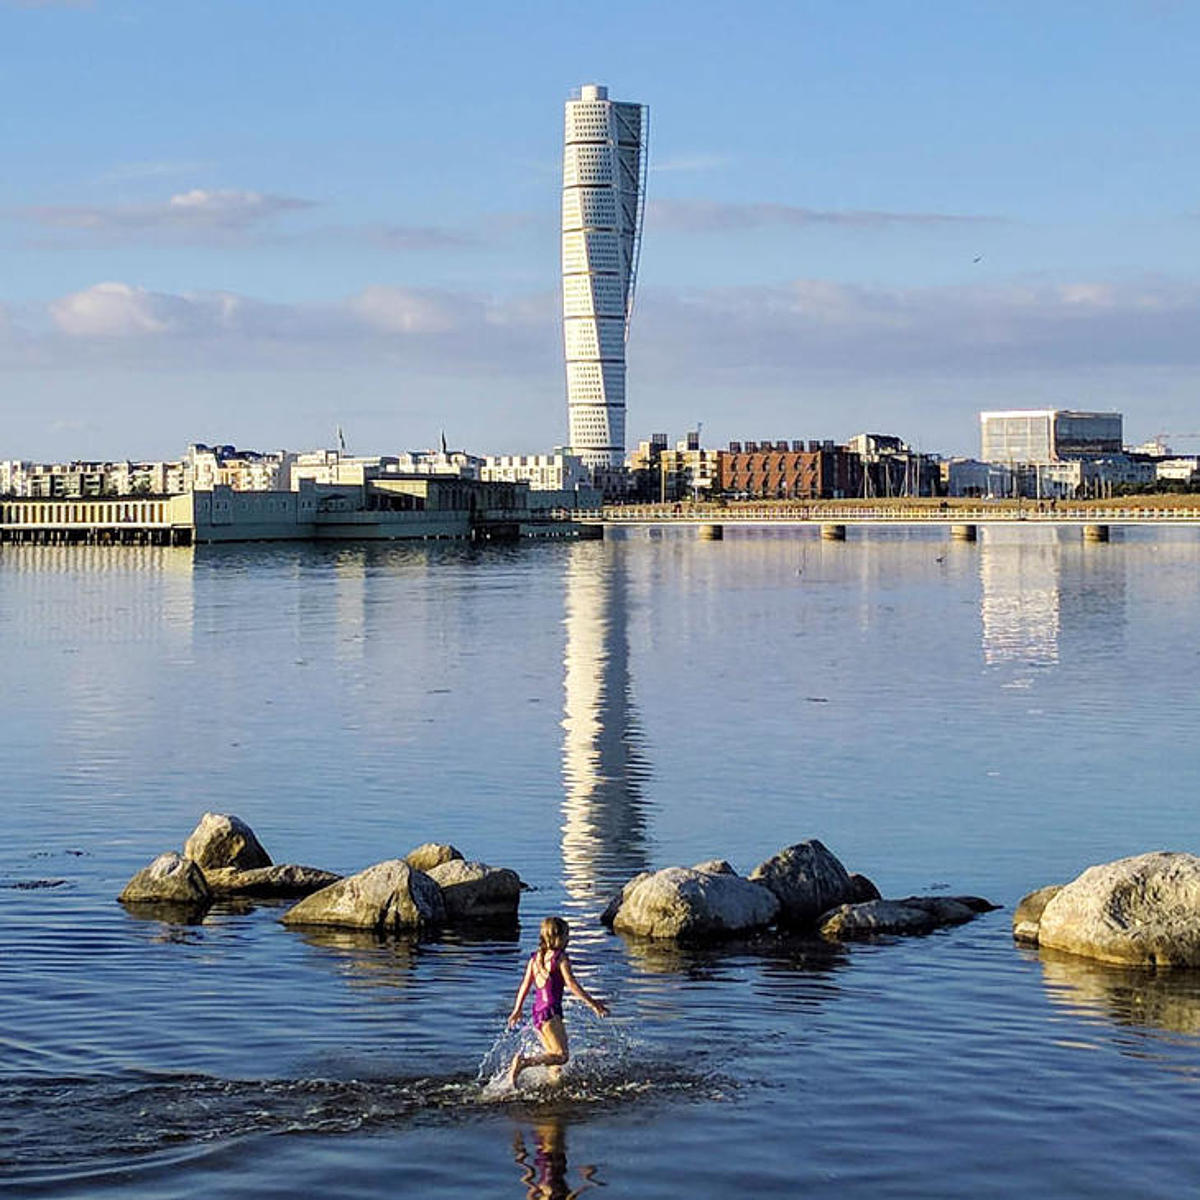 The Turning Torso Malmö is reflected in the water.